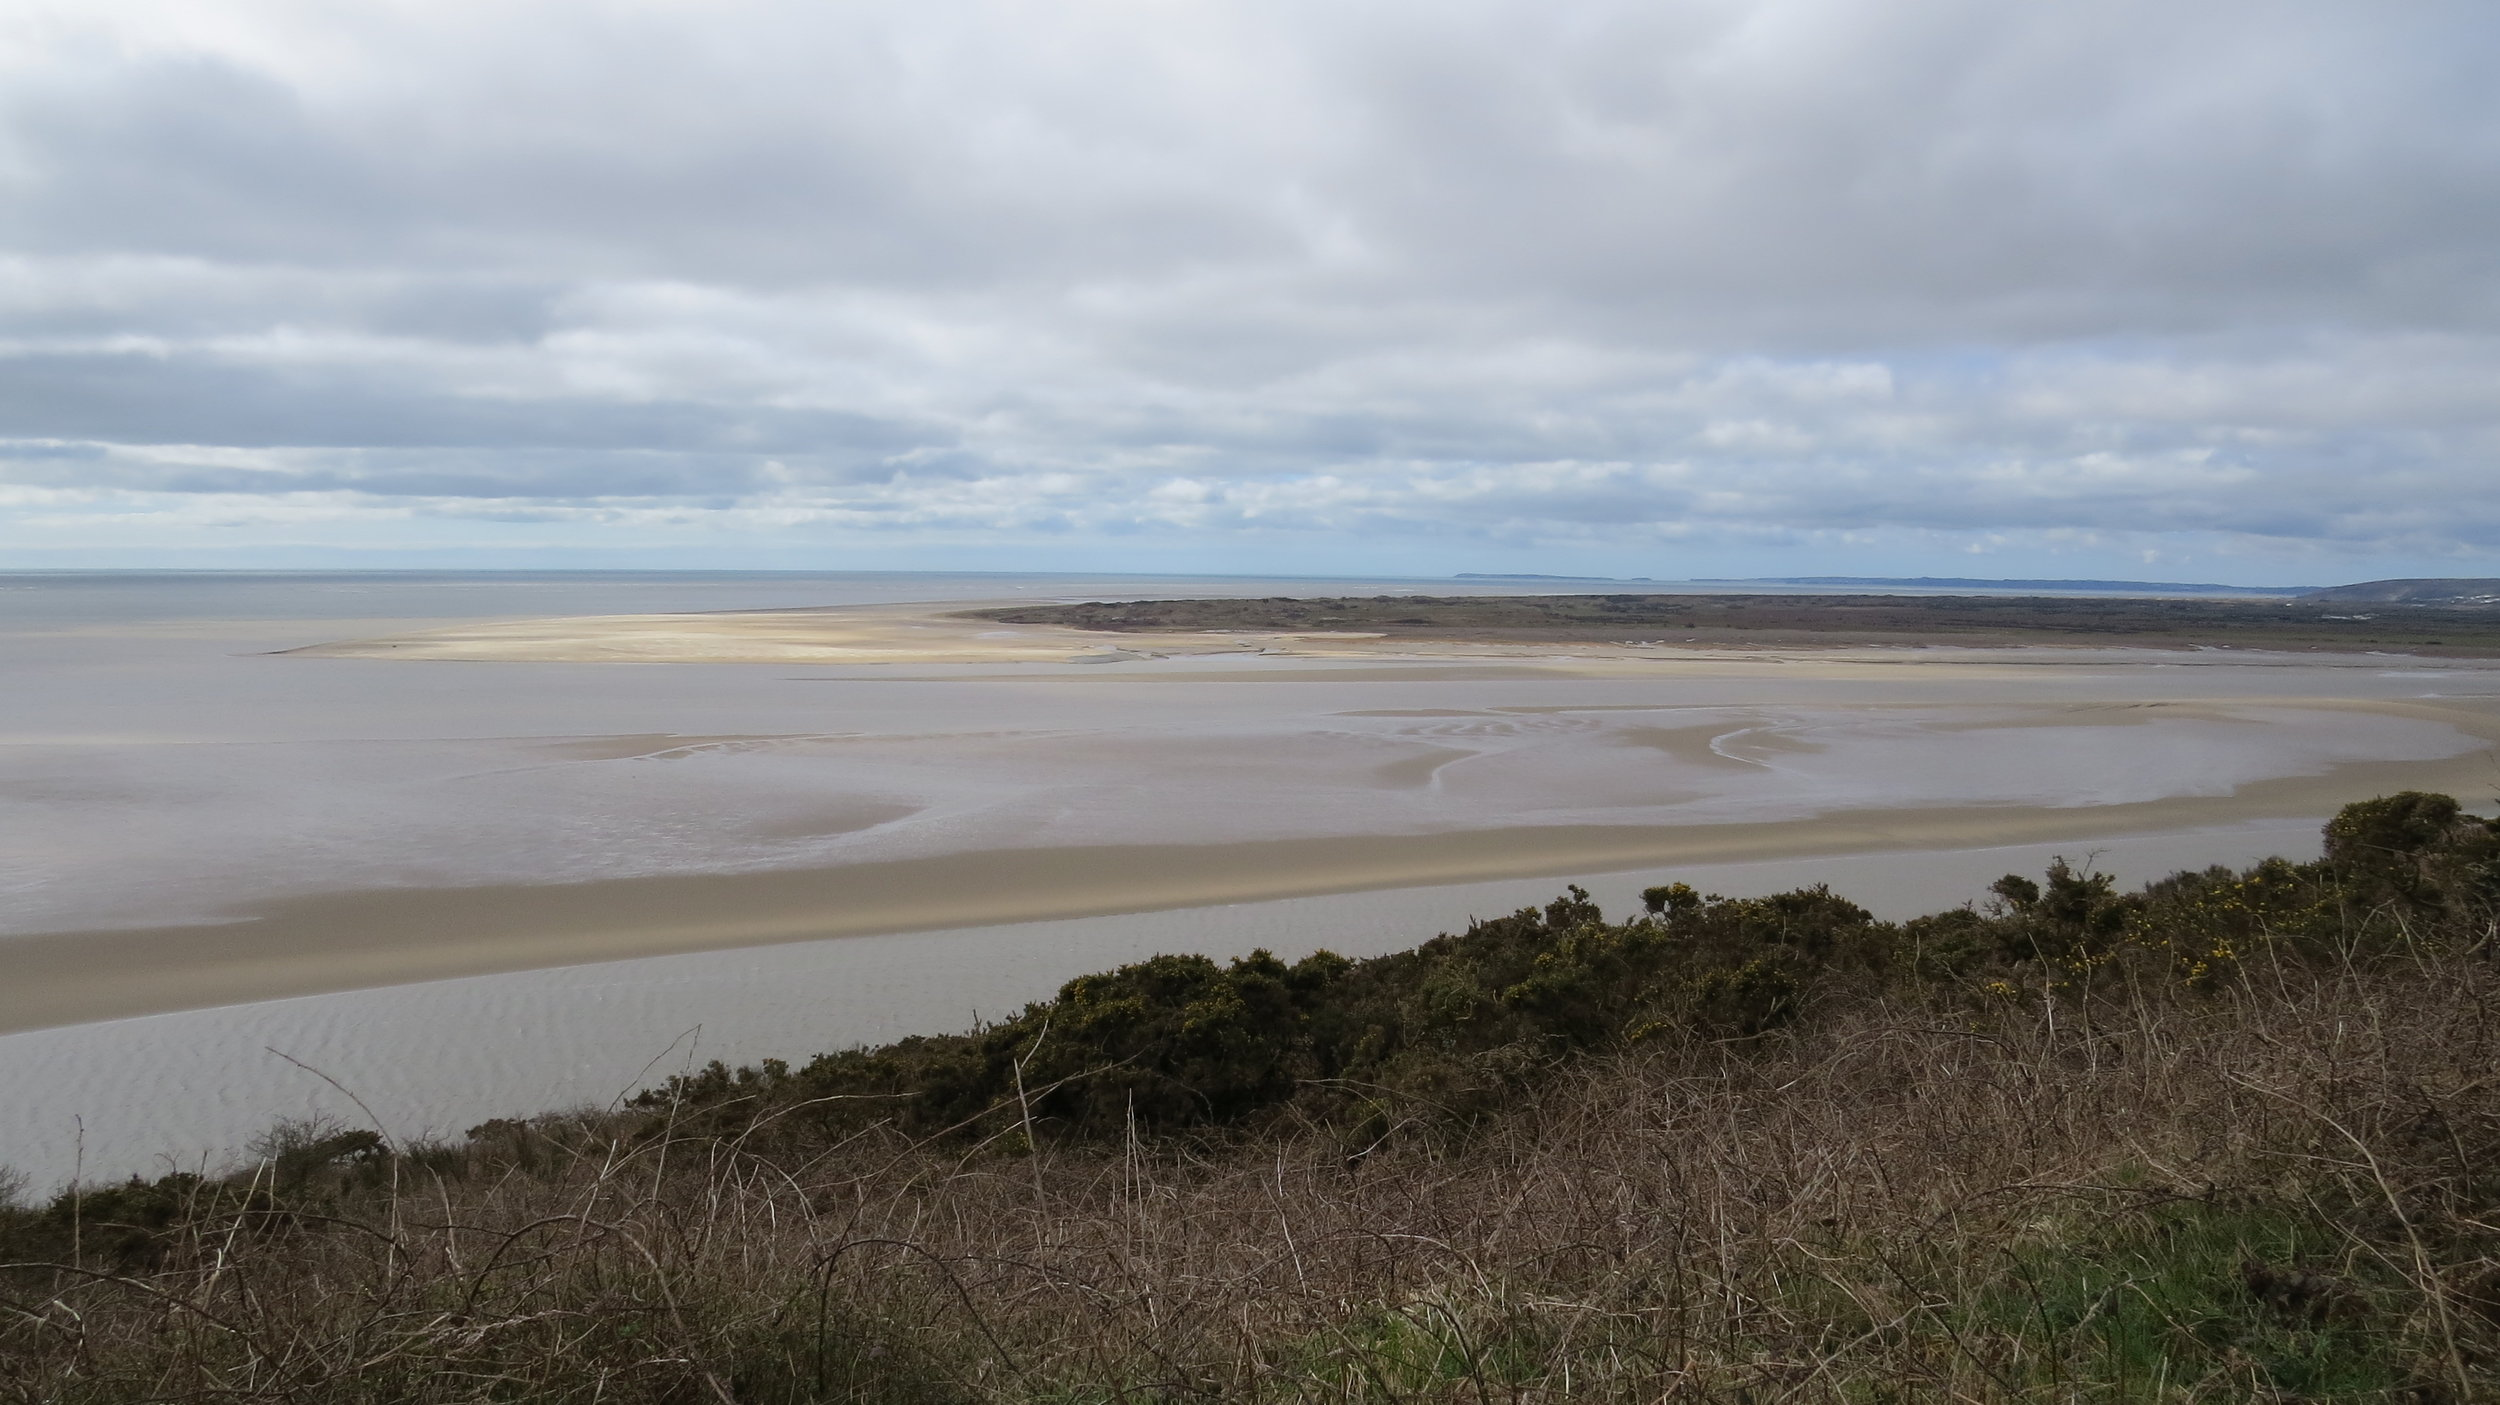 Looking Towards Laugharne Marshes